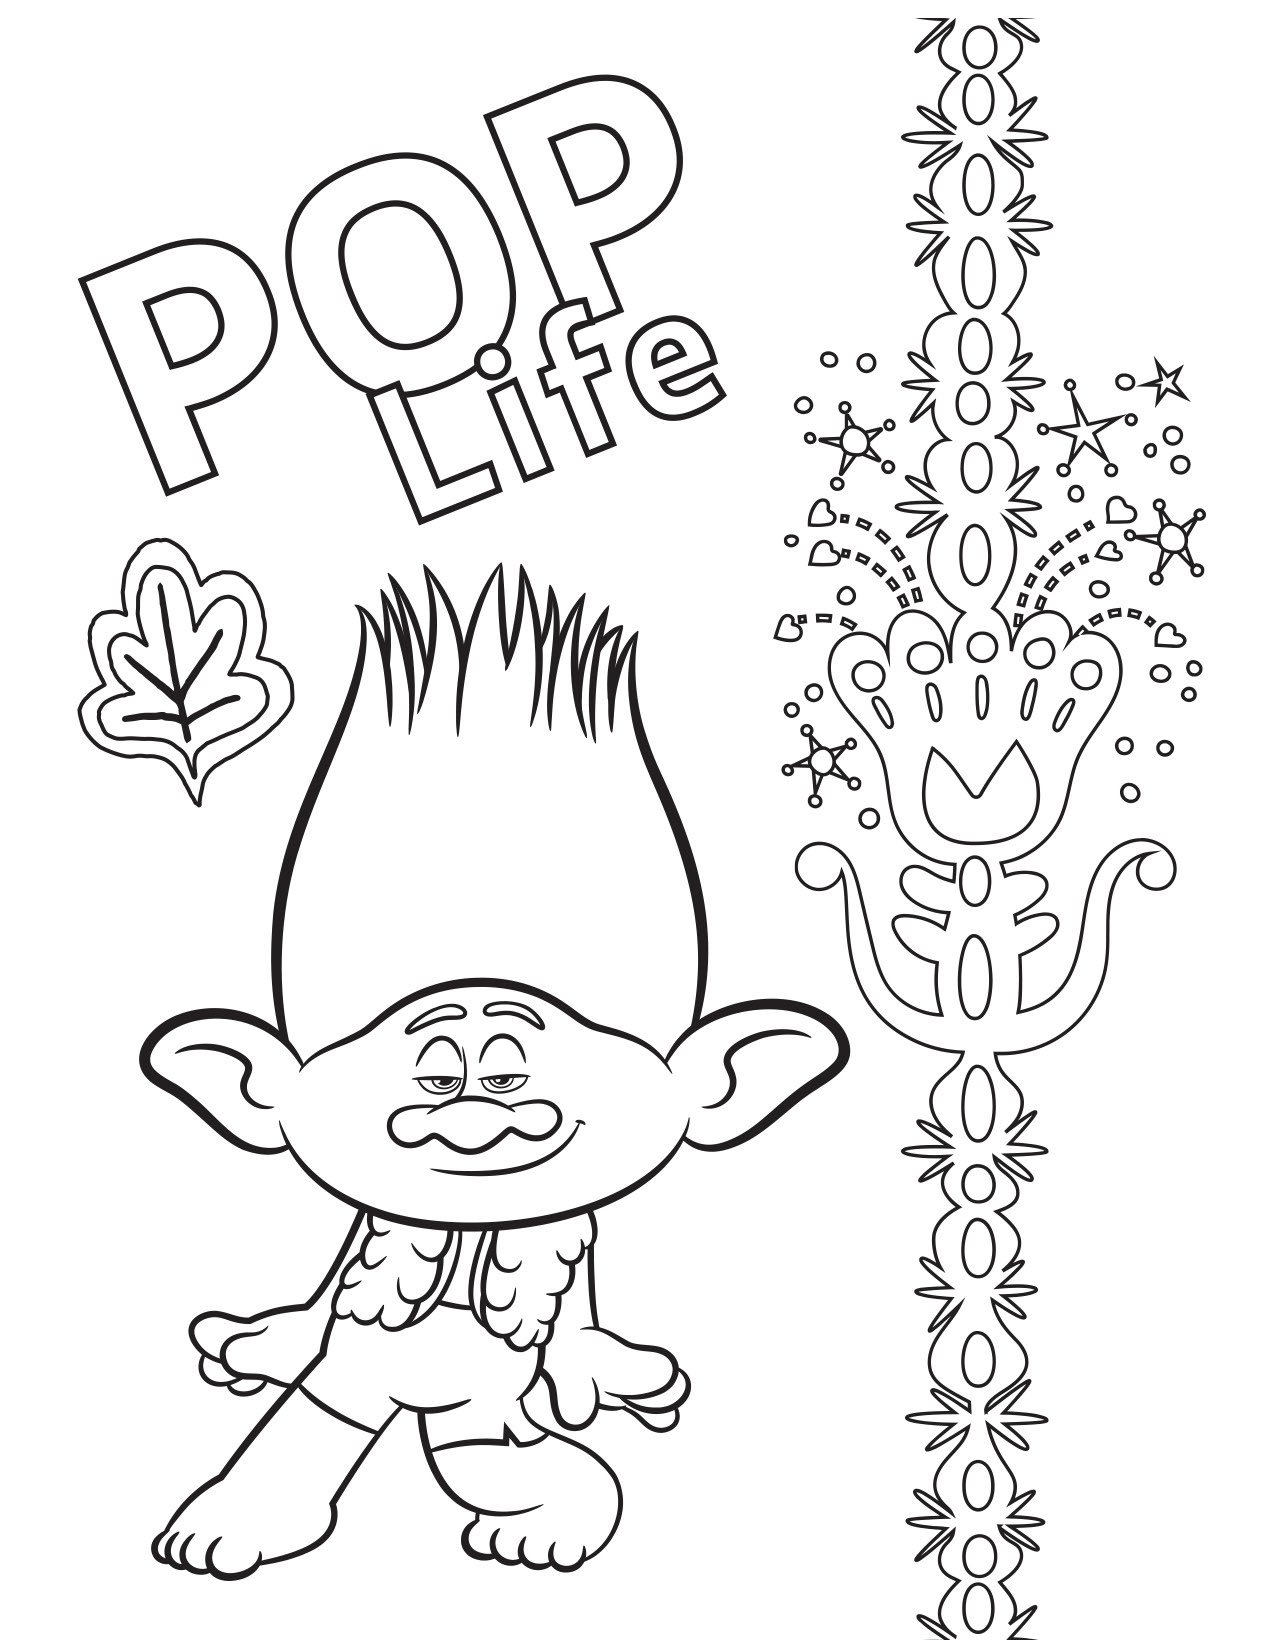 Trolls World Tour coloring pages - YouLoveIt.com